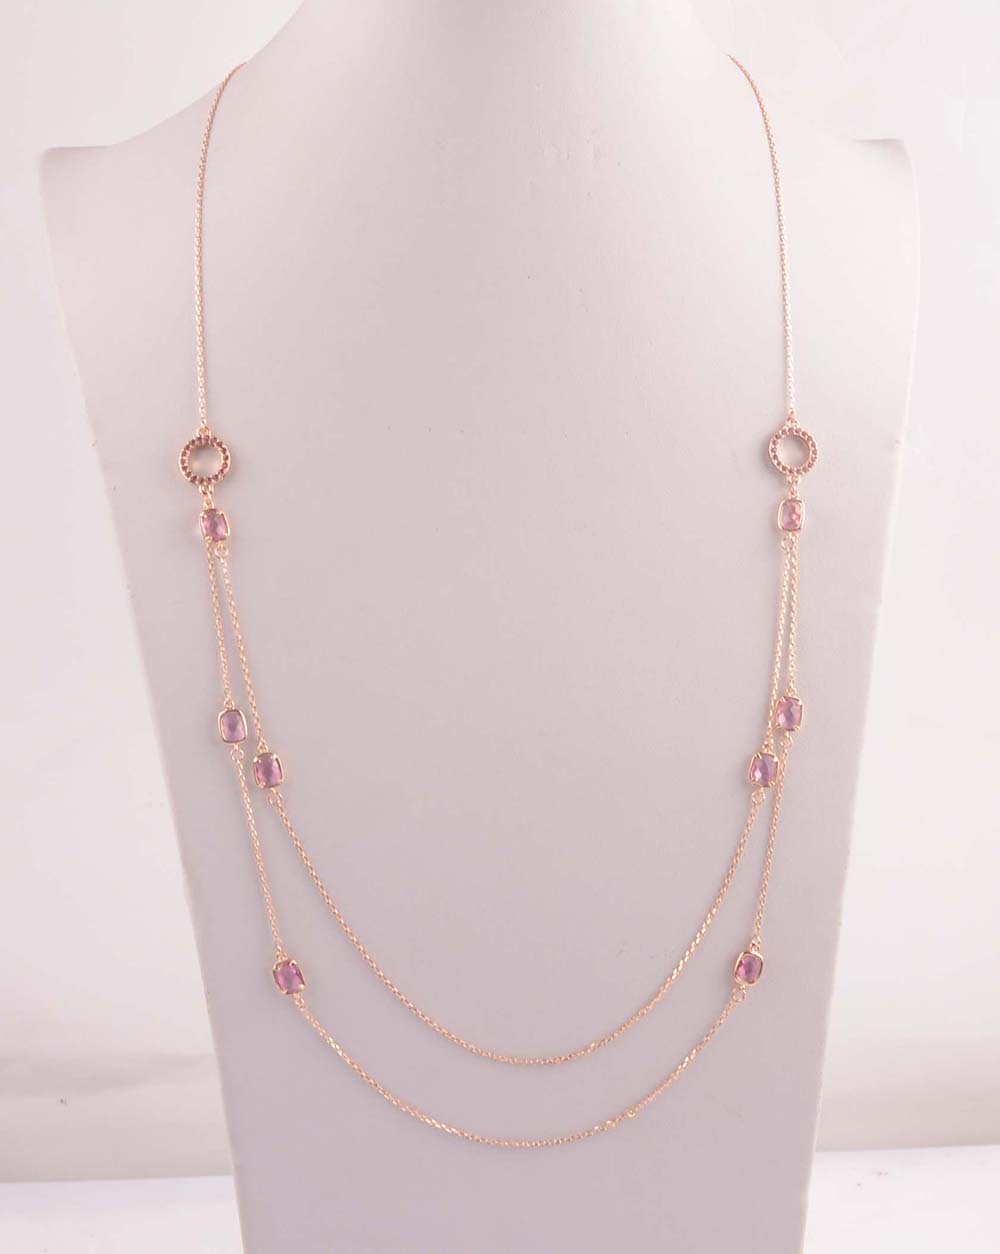 907552 Lady Long Necklace